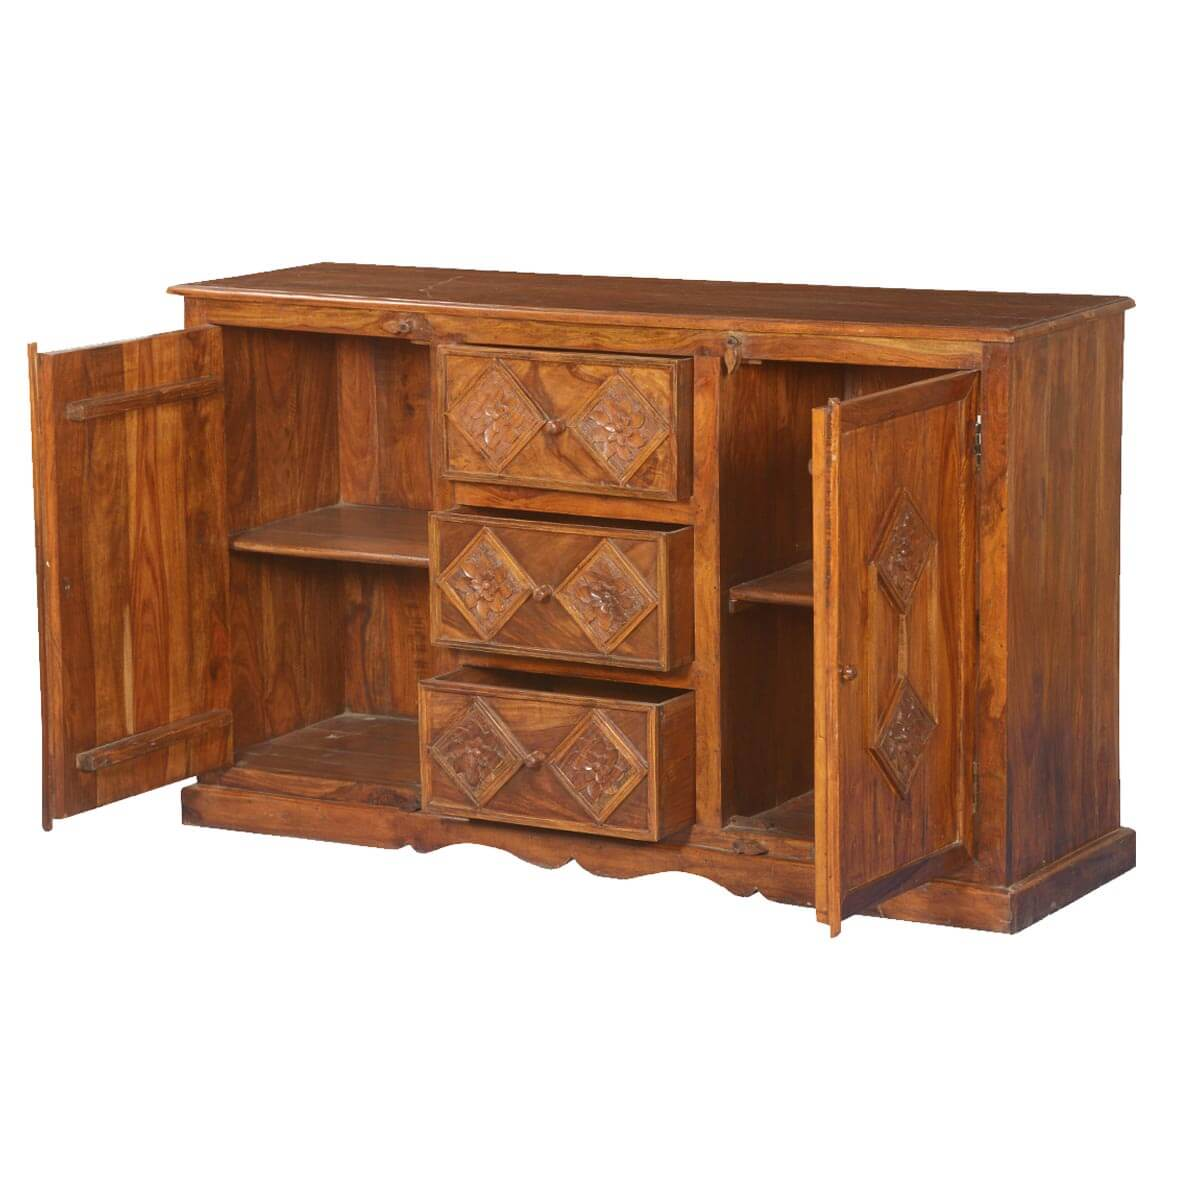 Diamond rose solid wood drawer sideboard